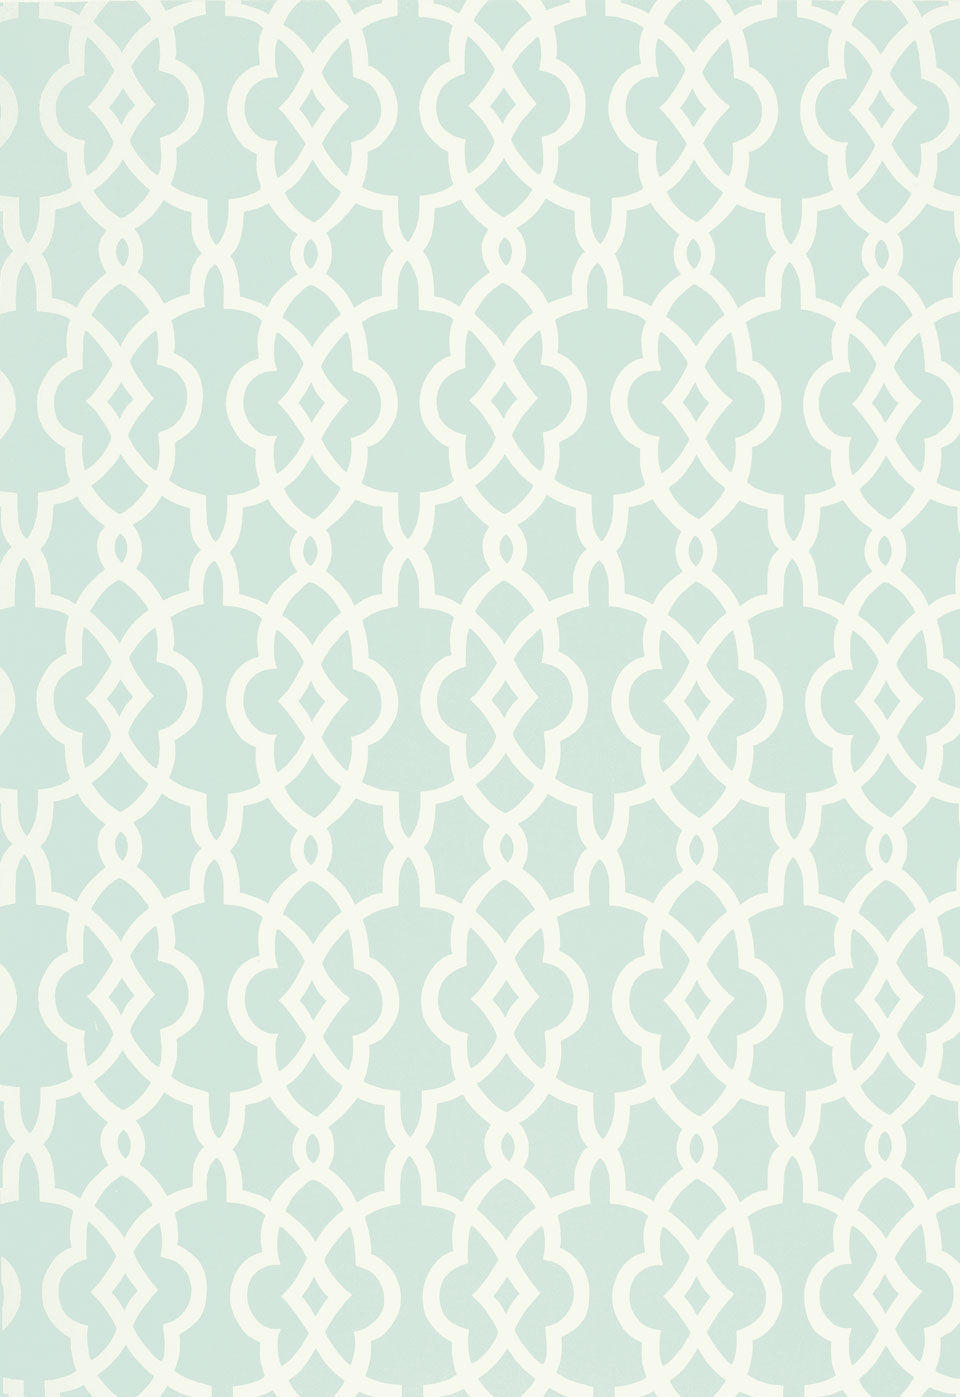 wallpapers walls traditional patterns lattice and trellis 960x1397